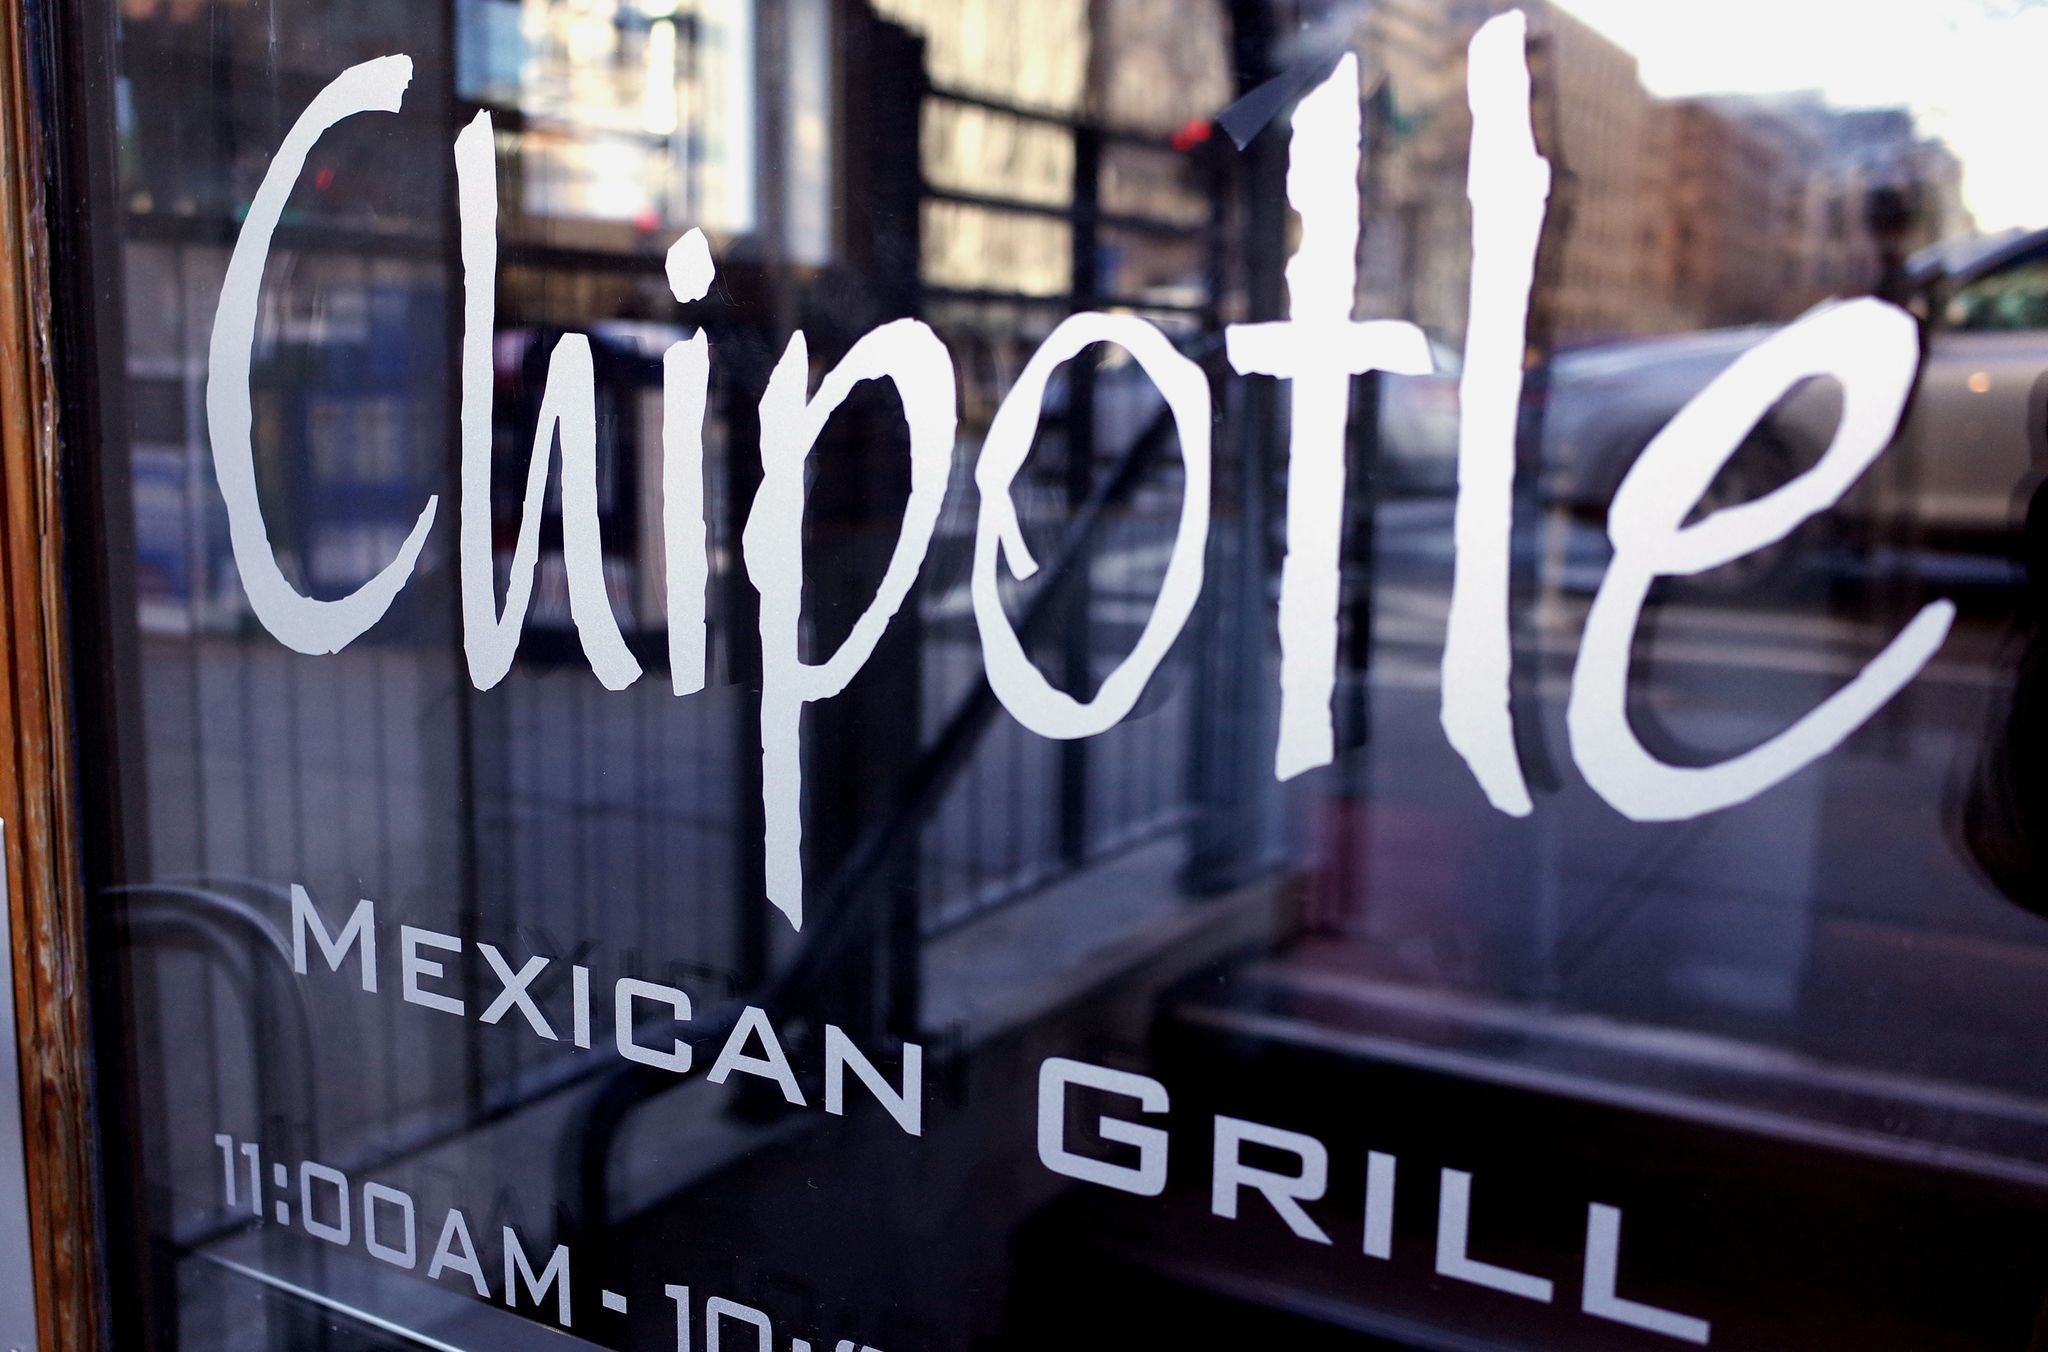 Chipotle will close Feb. 8 for companywide meeting on food safety